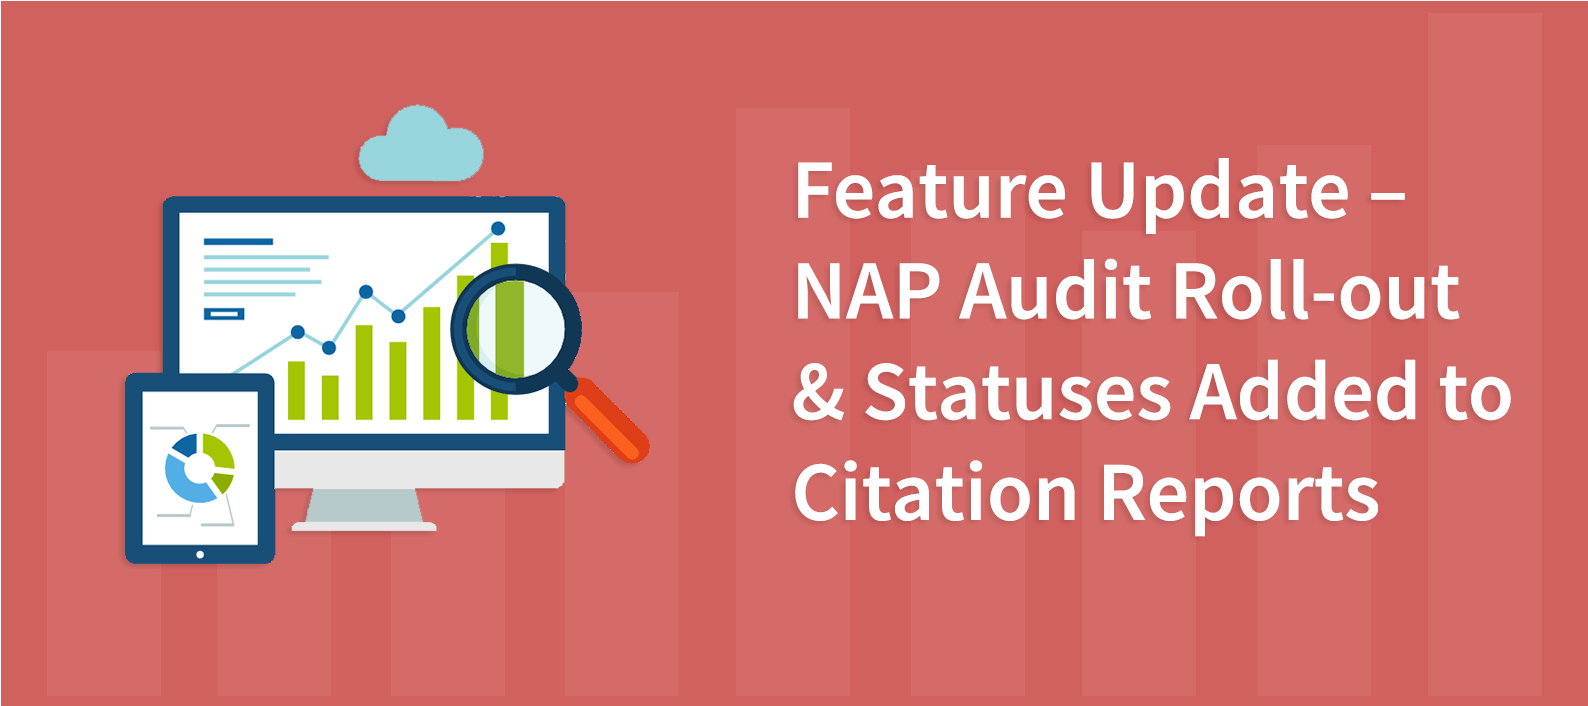 Feature Update – NAP Audit Roll-out & Statuses Added to Citation Reports